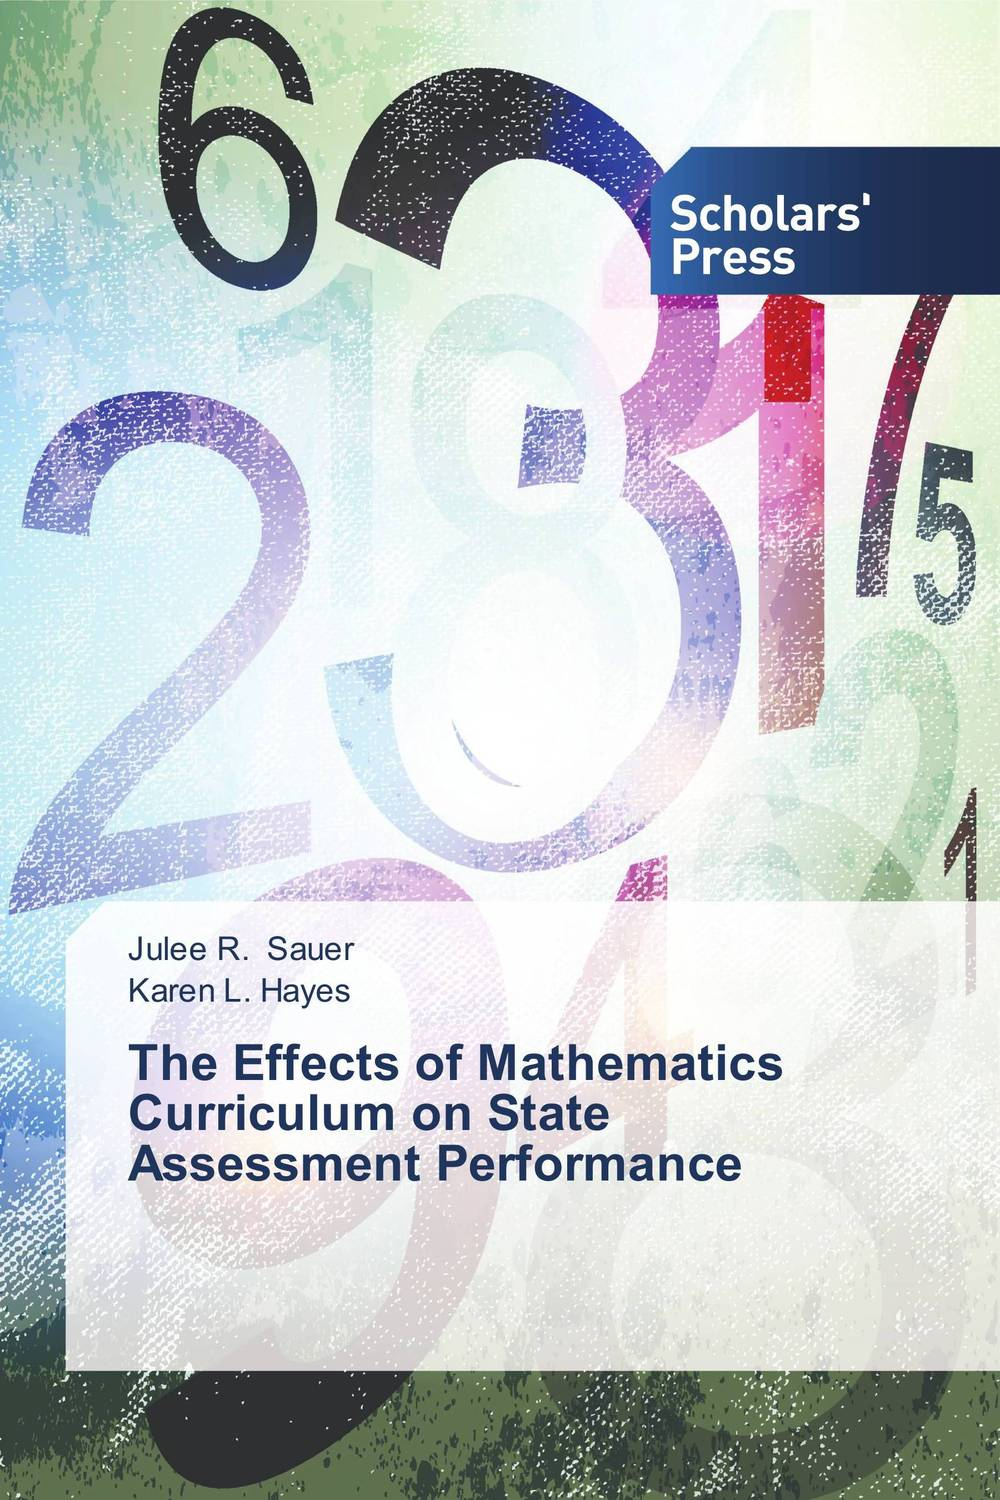 The Effects of Mathematics Curriculum on State Assessment Performance david parmenter key performance indicators developing implementing and using winning kpis